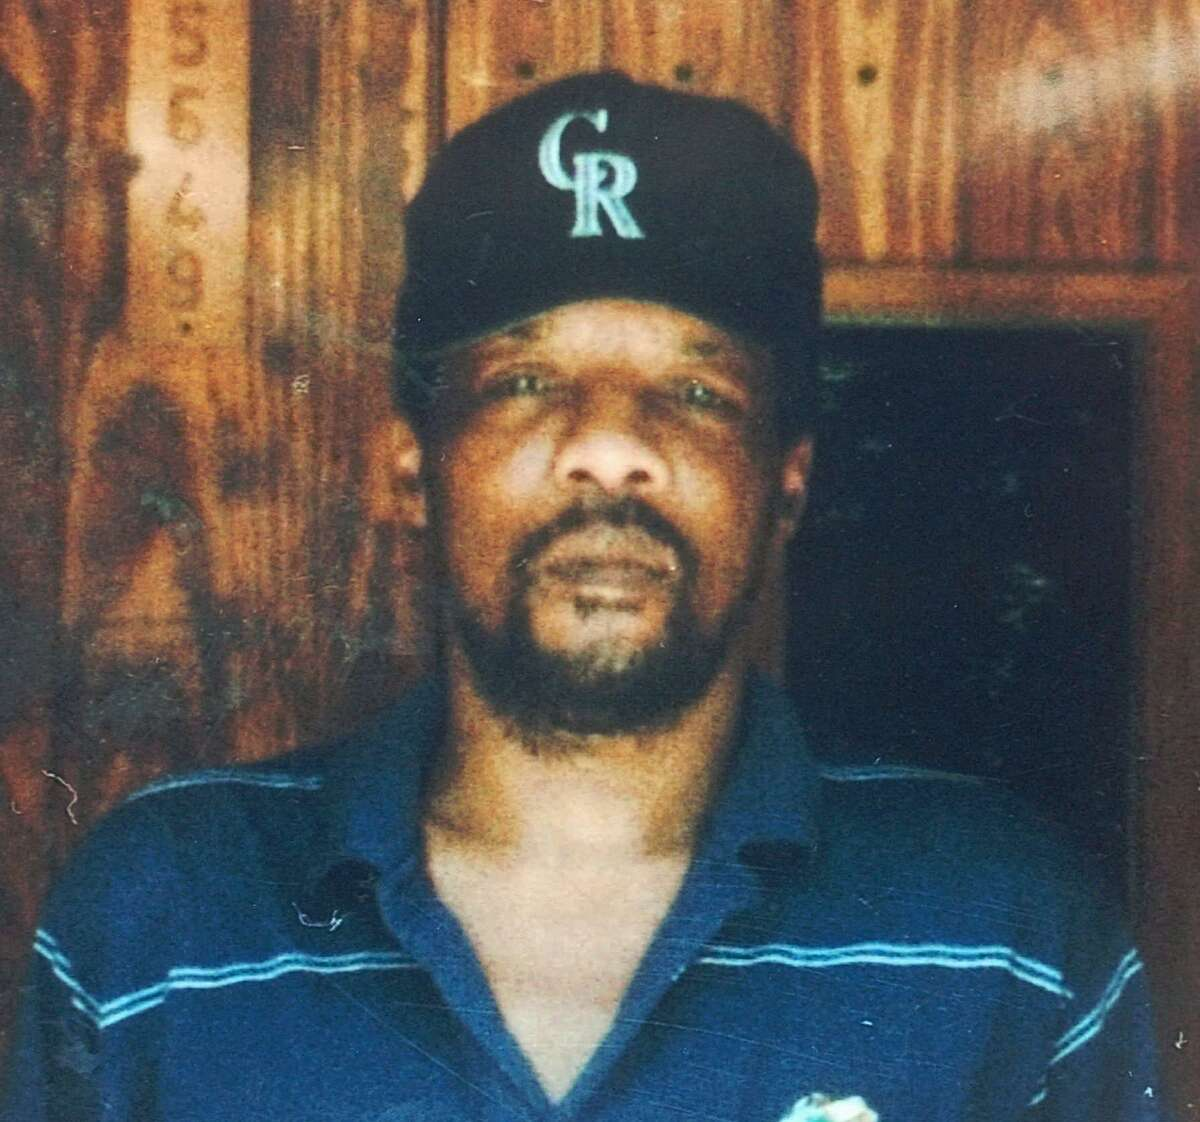 FILE - James Byrd Jr., shown in this 1997 family photo, was tied to a truck and dragged to his death along a rural East Texas road early Sunday, June 7, 1998, near Jasper, Texas. Lawrence Russell Brewer, 44, one of two purported white supremacists condemned for Byrdâ??s death, is set for execution Wednesday for participating in chaining Byrd to the back of a pickup truck, dragging the black man along the road and dumping what was left of his shredded body outside a black church and cemetery. (AP Photo/Byrd Family Photo, File)